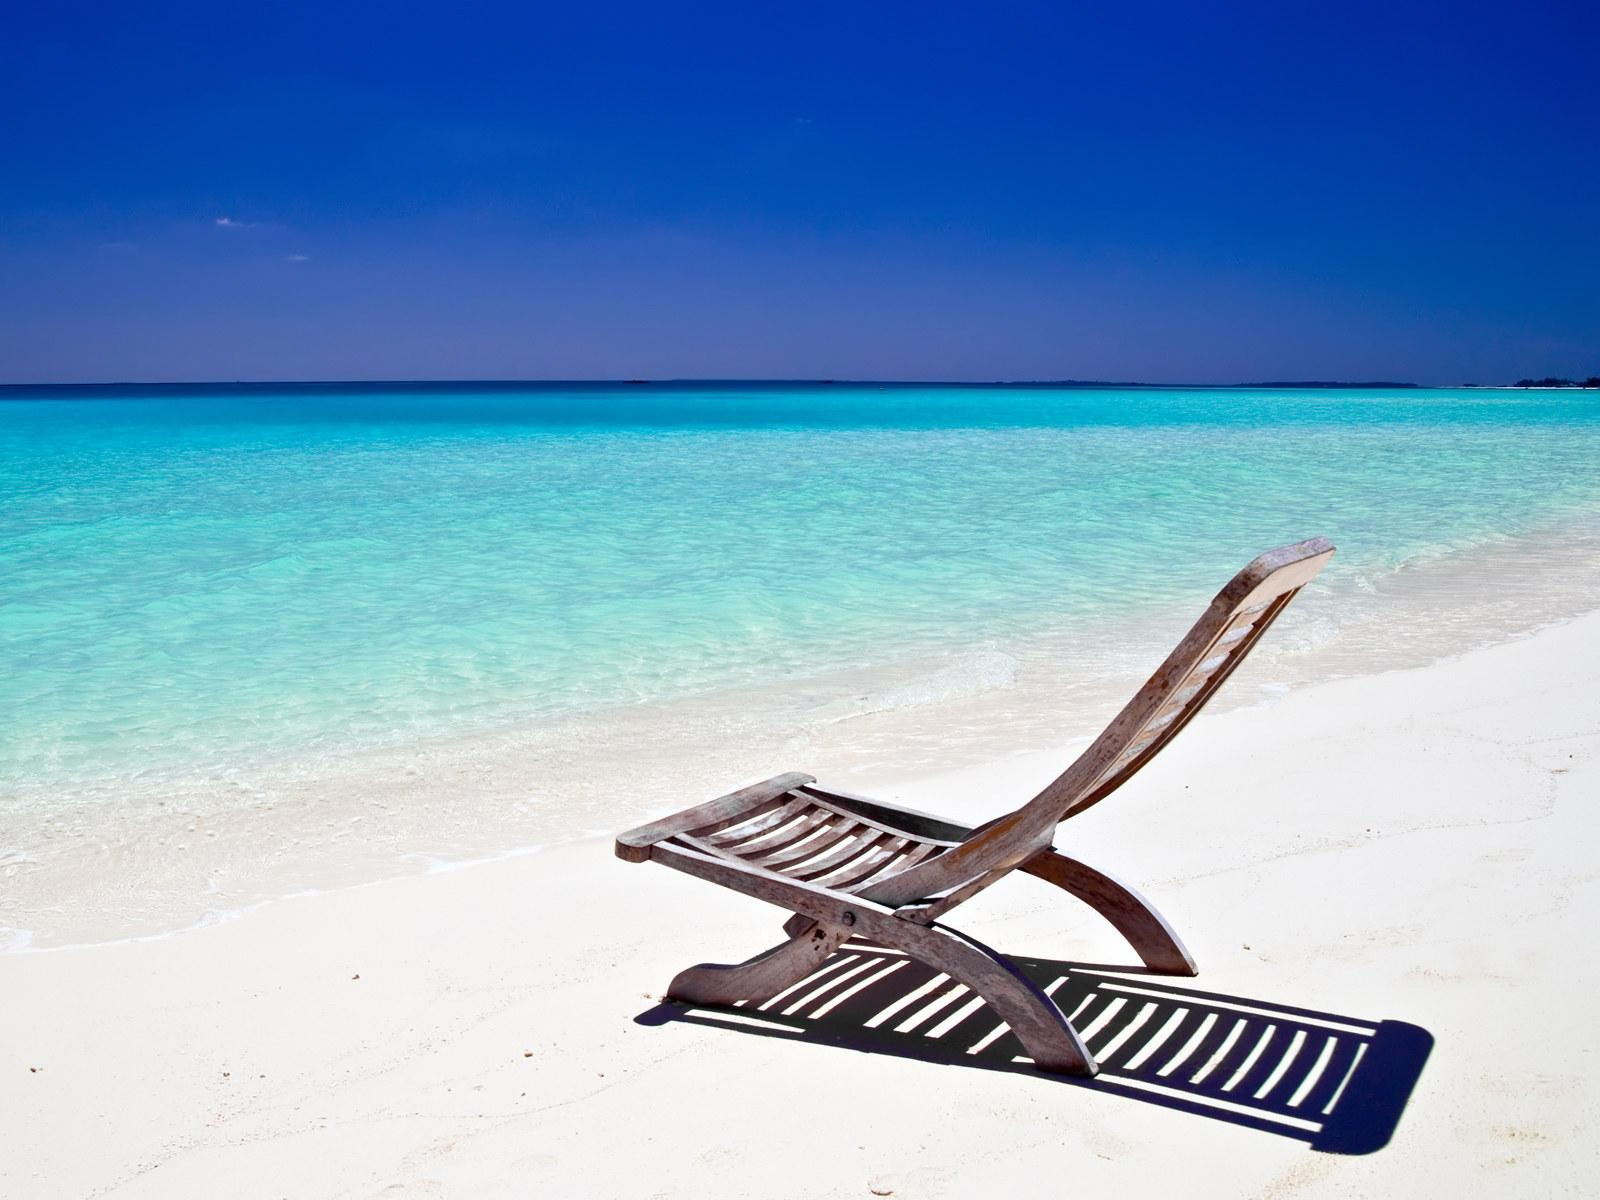 1600x1200 Beach chair